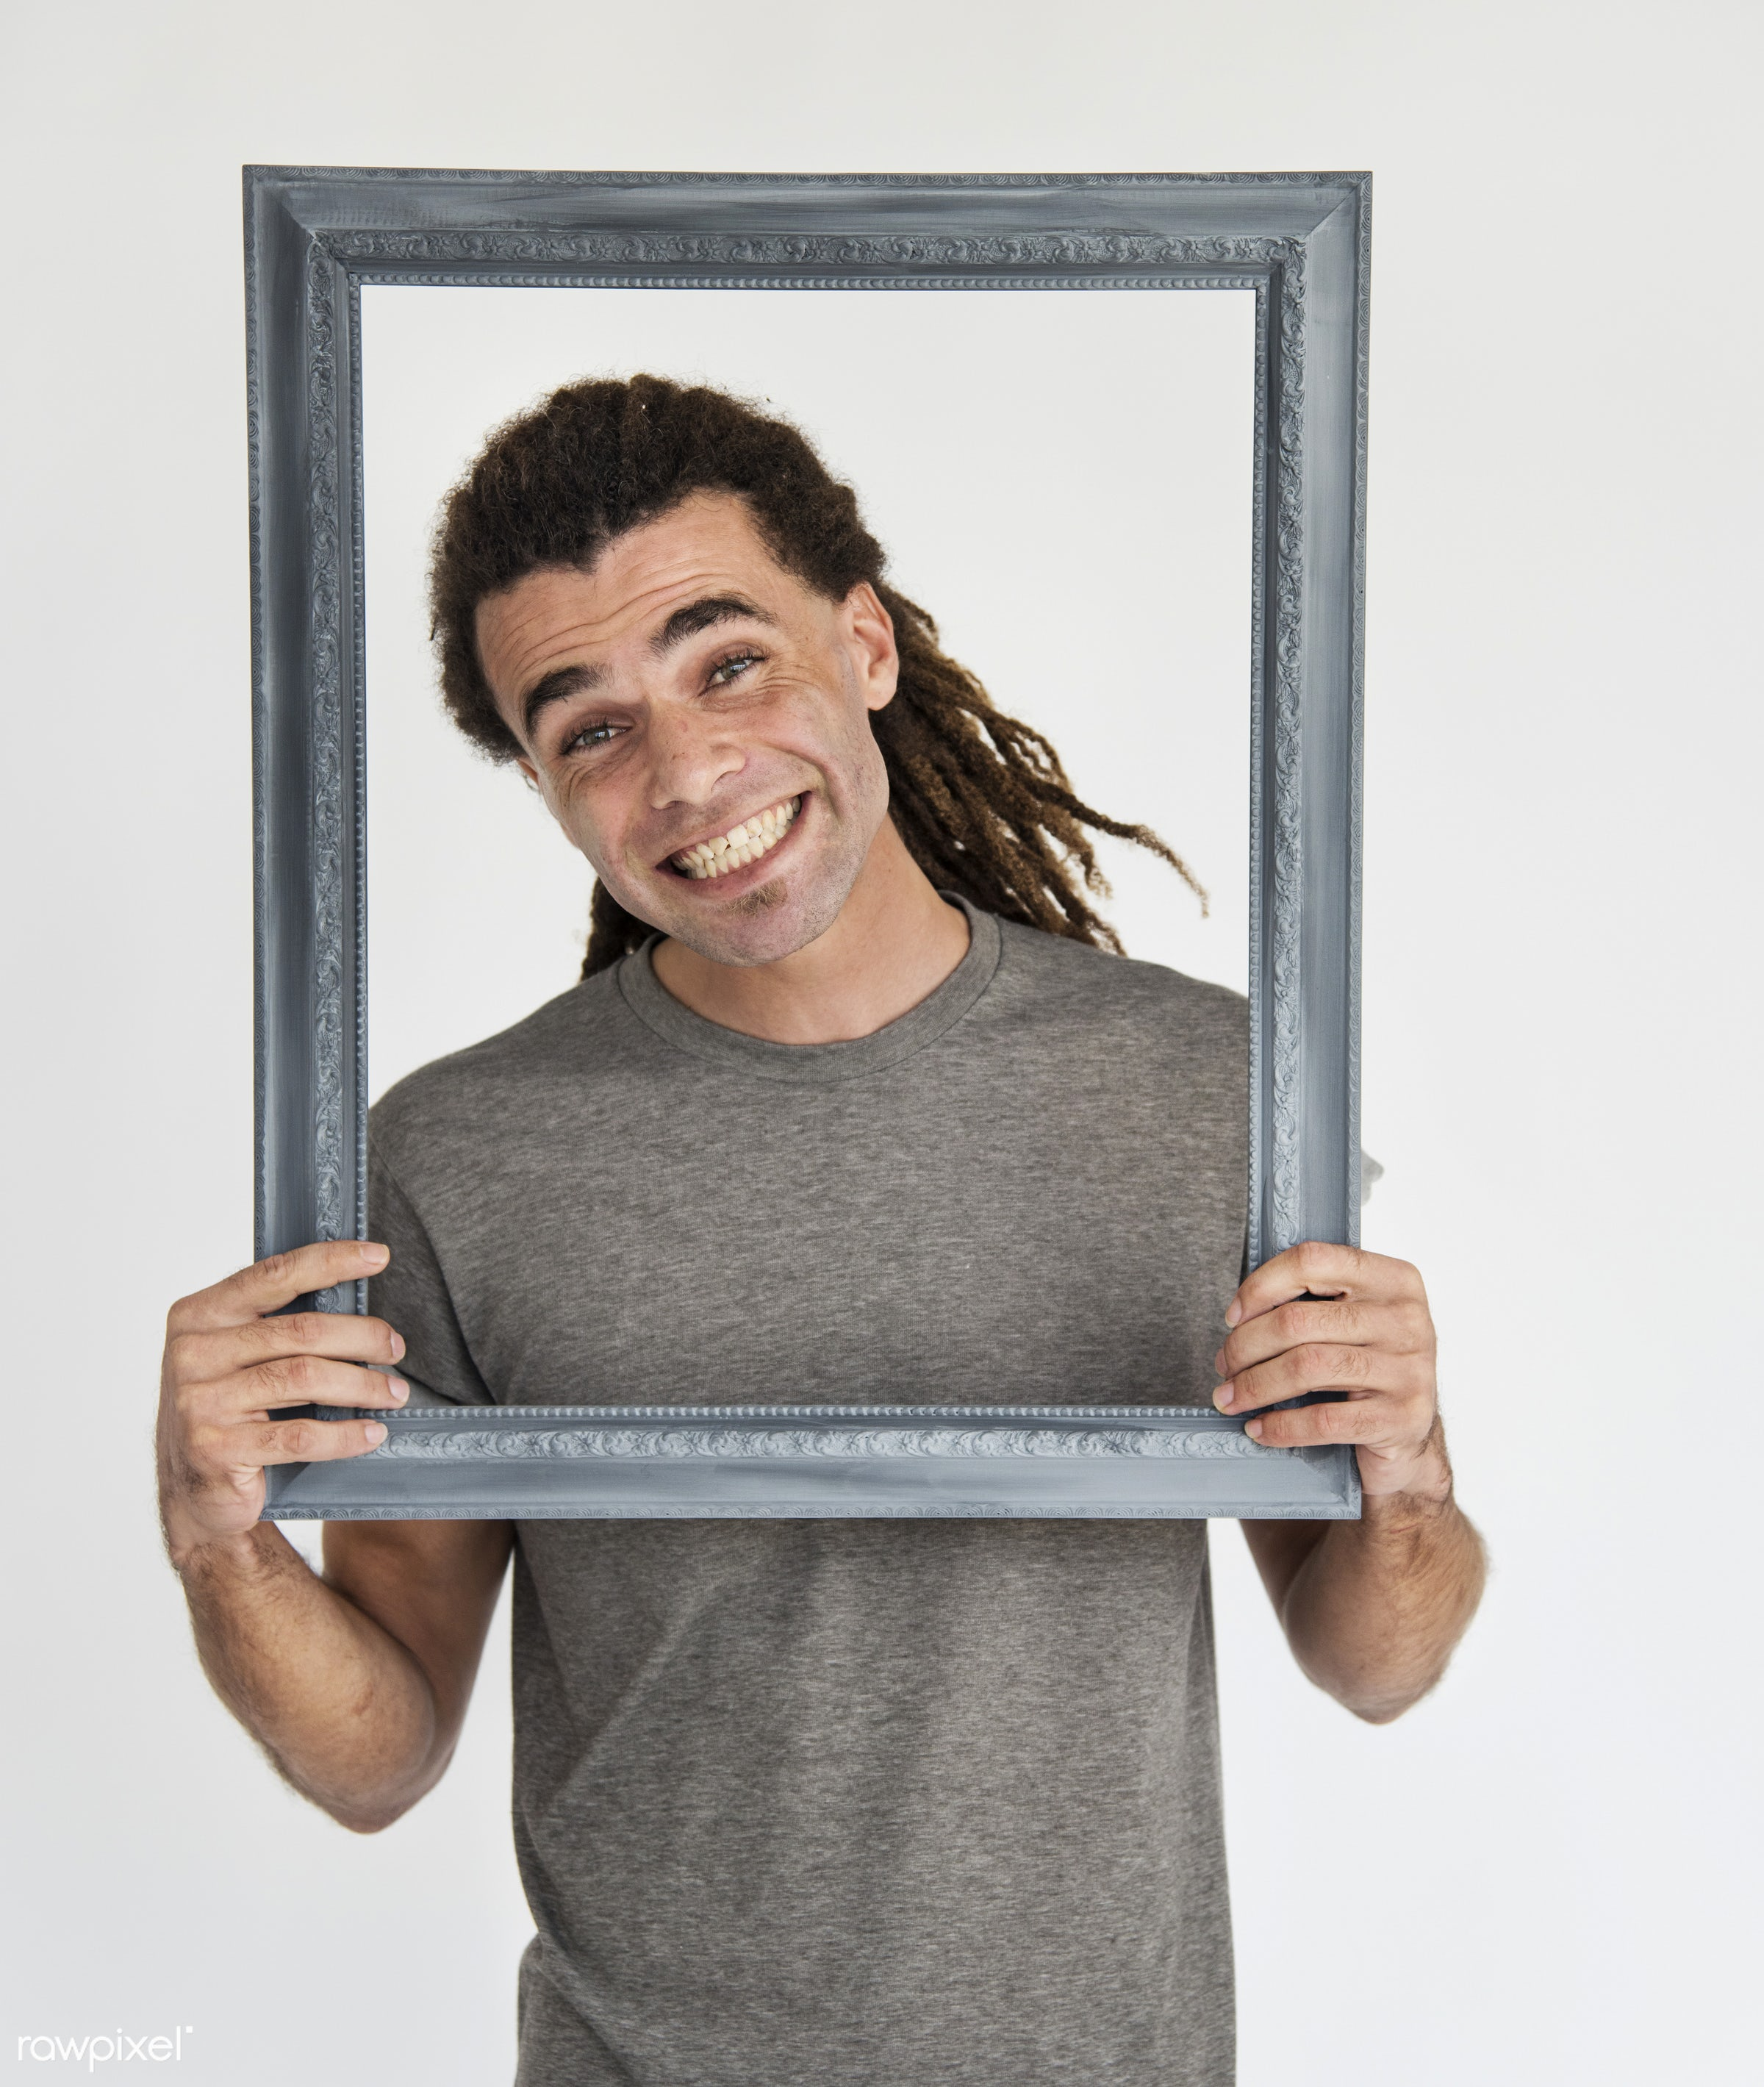 expression, person, holding, caucasian, lifestyle, positive, cheerful, smiling, gentleman, cool, isolated, dreadlocks,...